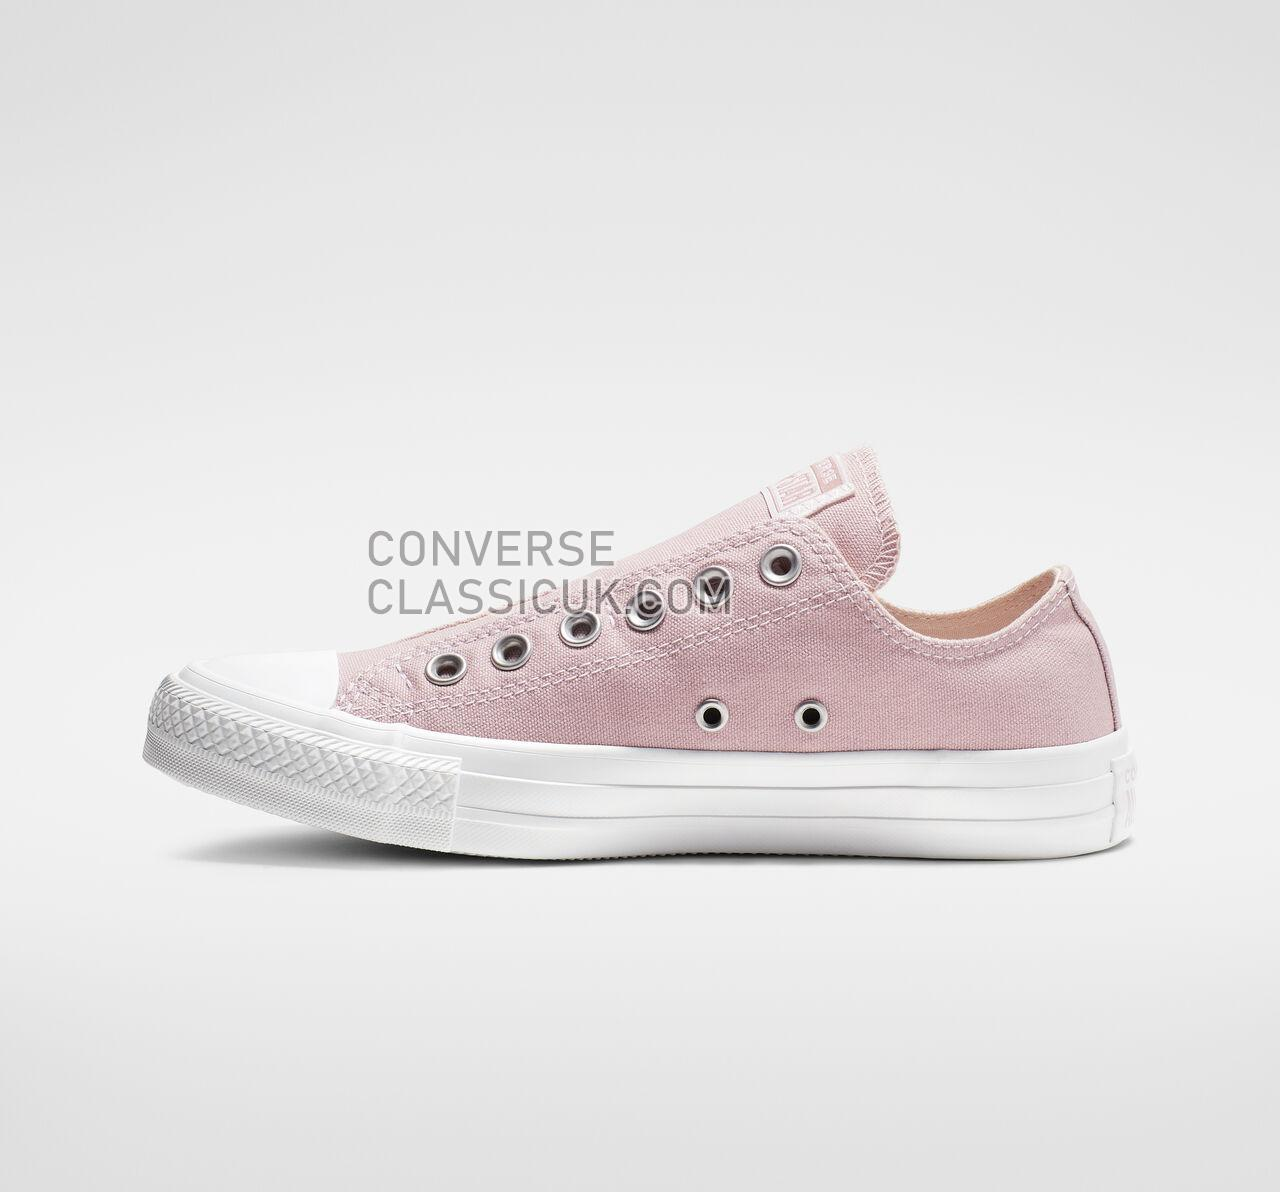 Converse Chuck Taylor All Star Slip Mens Womens Unisex 164304C Plum Chalk/Washed Coral/White Shoes